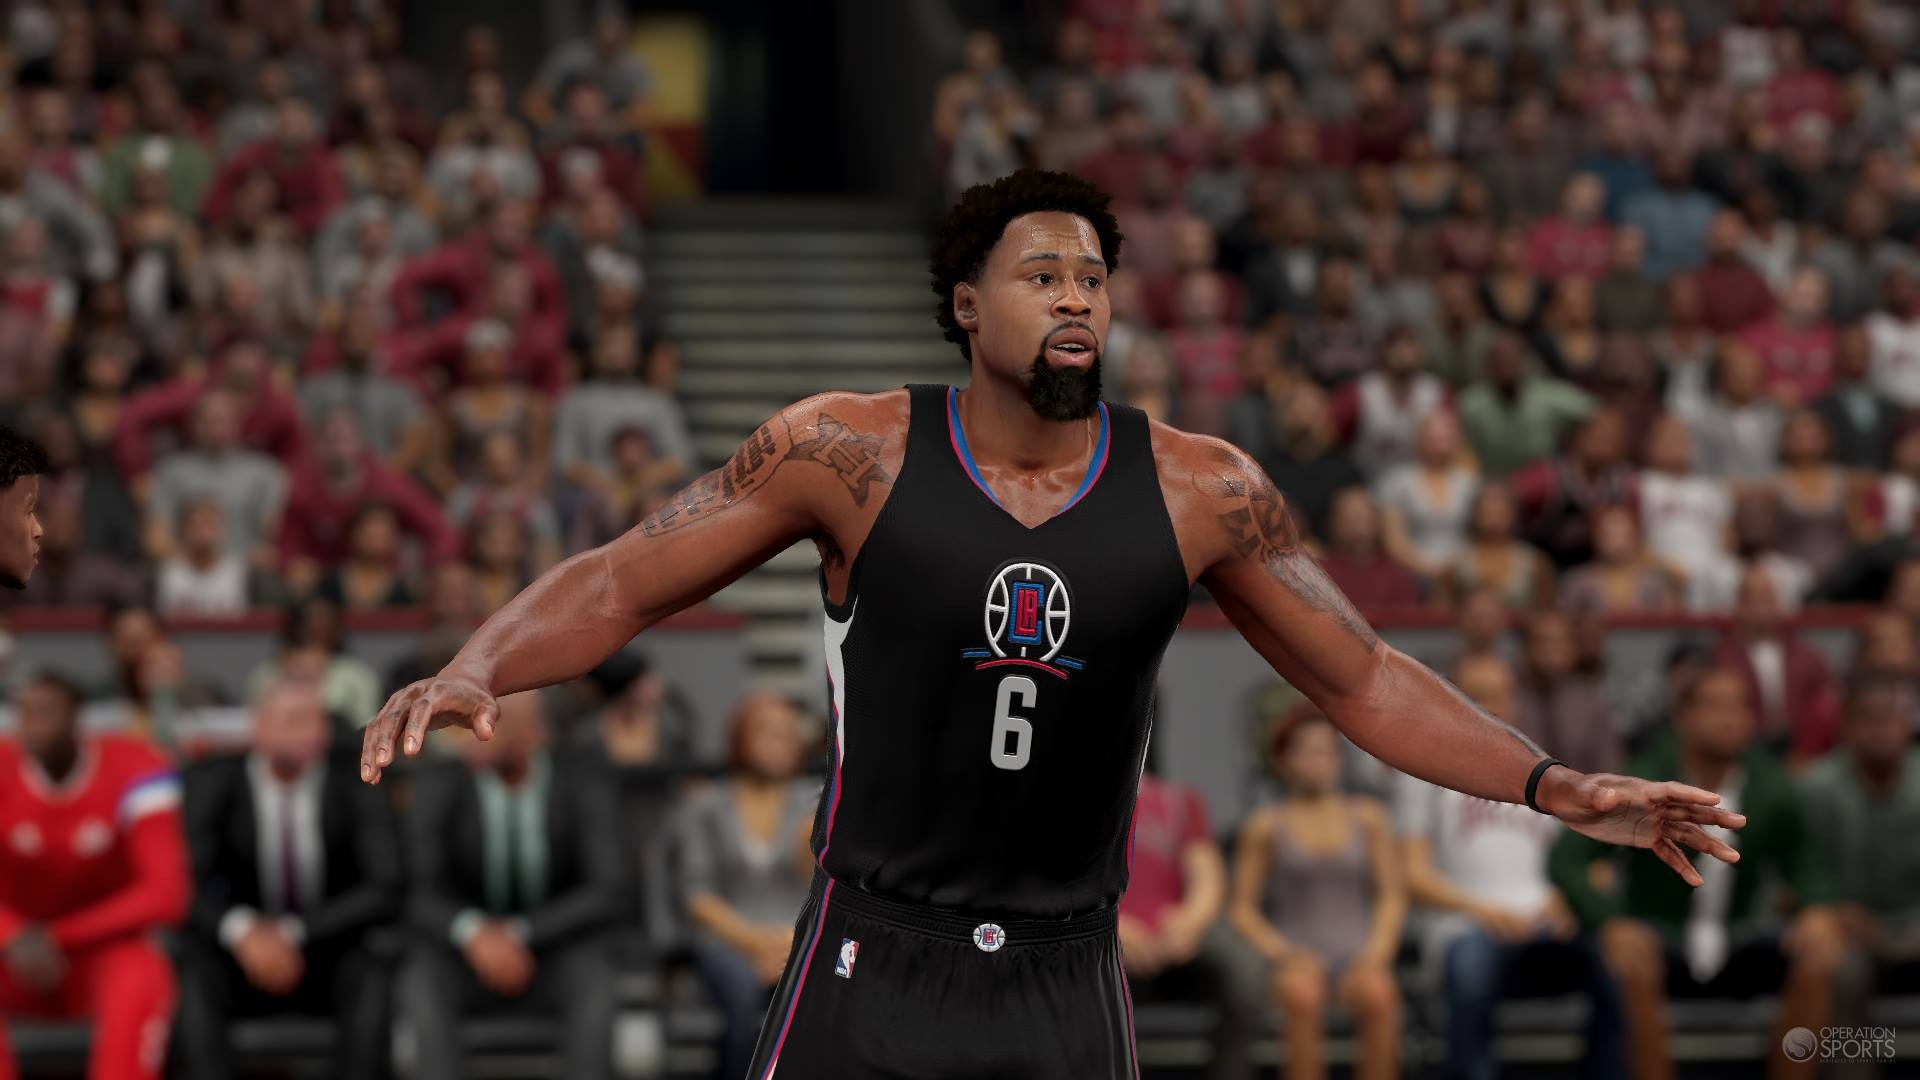 Nba 2k16 Adds Mask For Derrick Rose Clippers Black Alternate